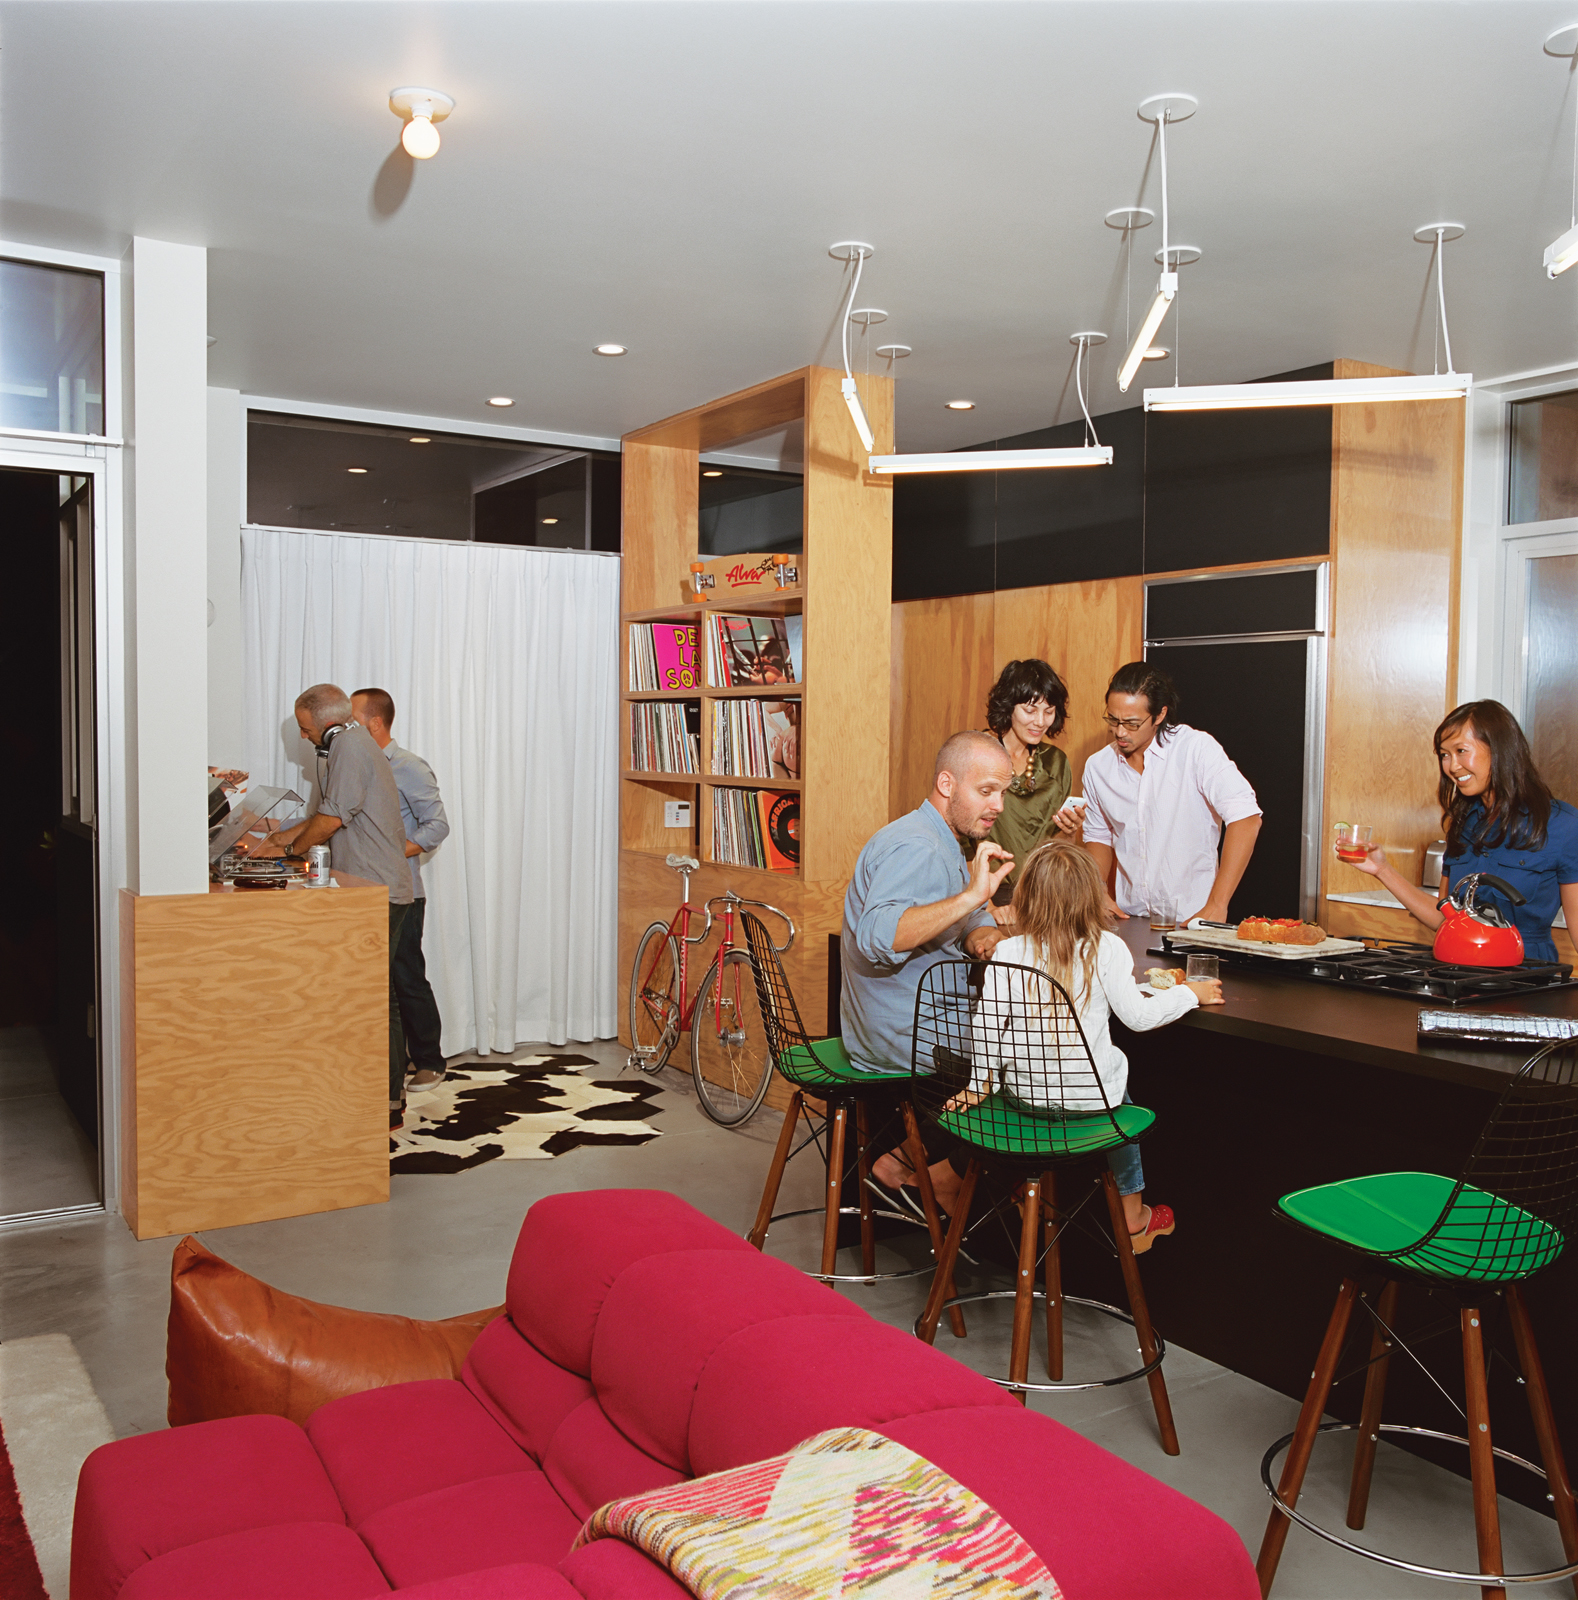 A music and cycling fan (the vintage bike is by Vivalo), Grunbaum mans the turntables while friends gather in the kitchen. Case Study barstools are from Modernica.